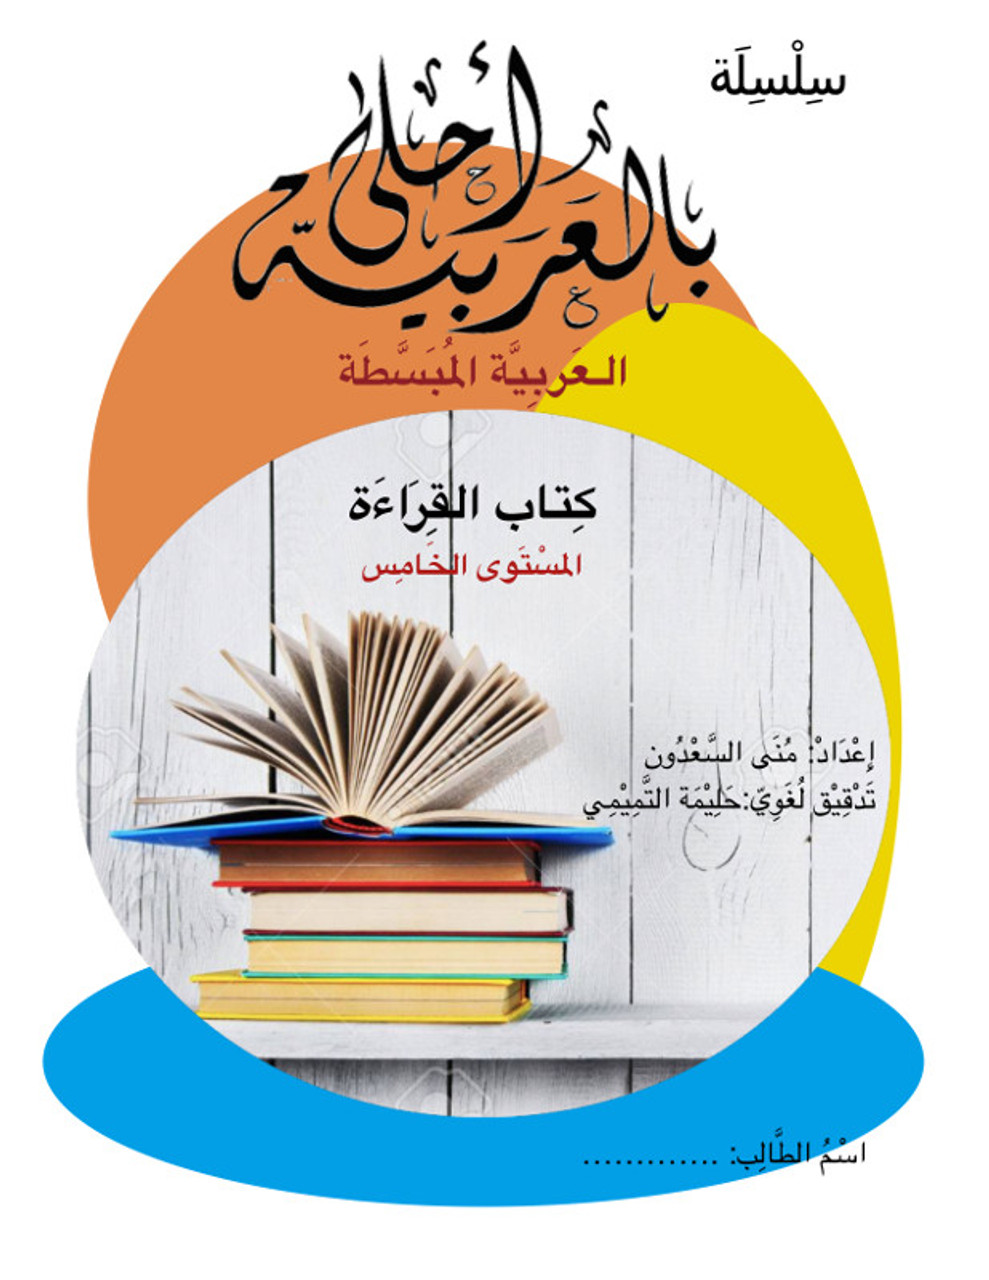 Bil Arabia Ahla: Al Arabia Al Mubasata (Reading Book, Level 5)